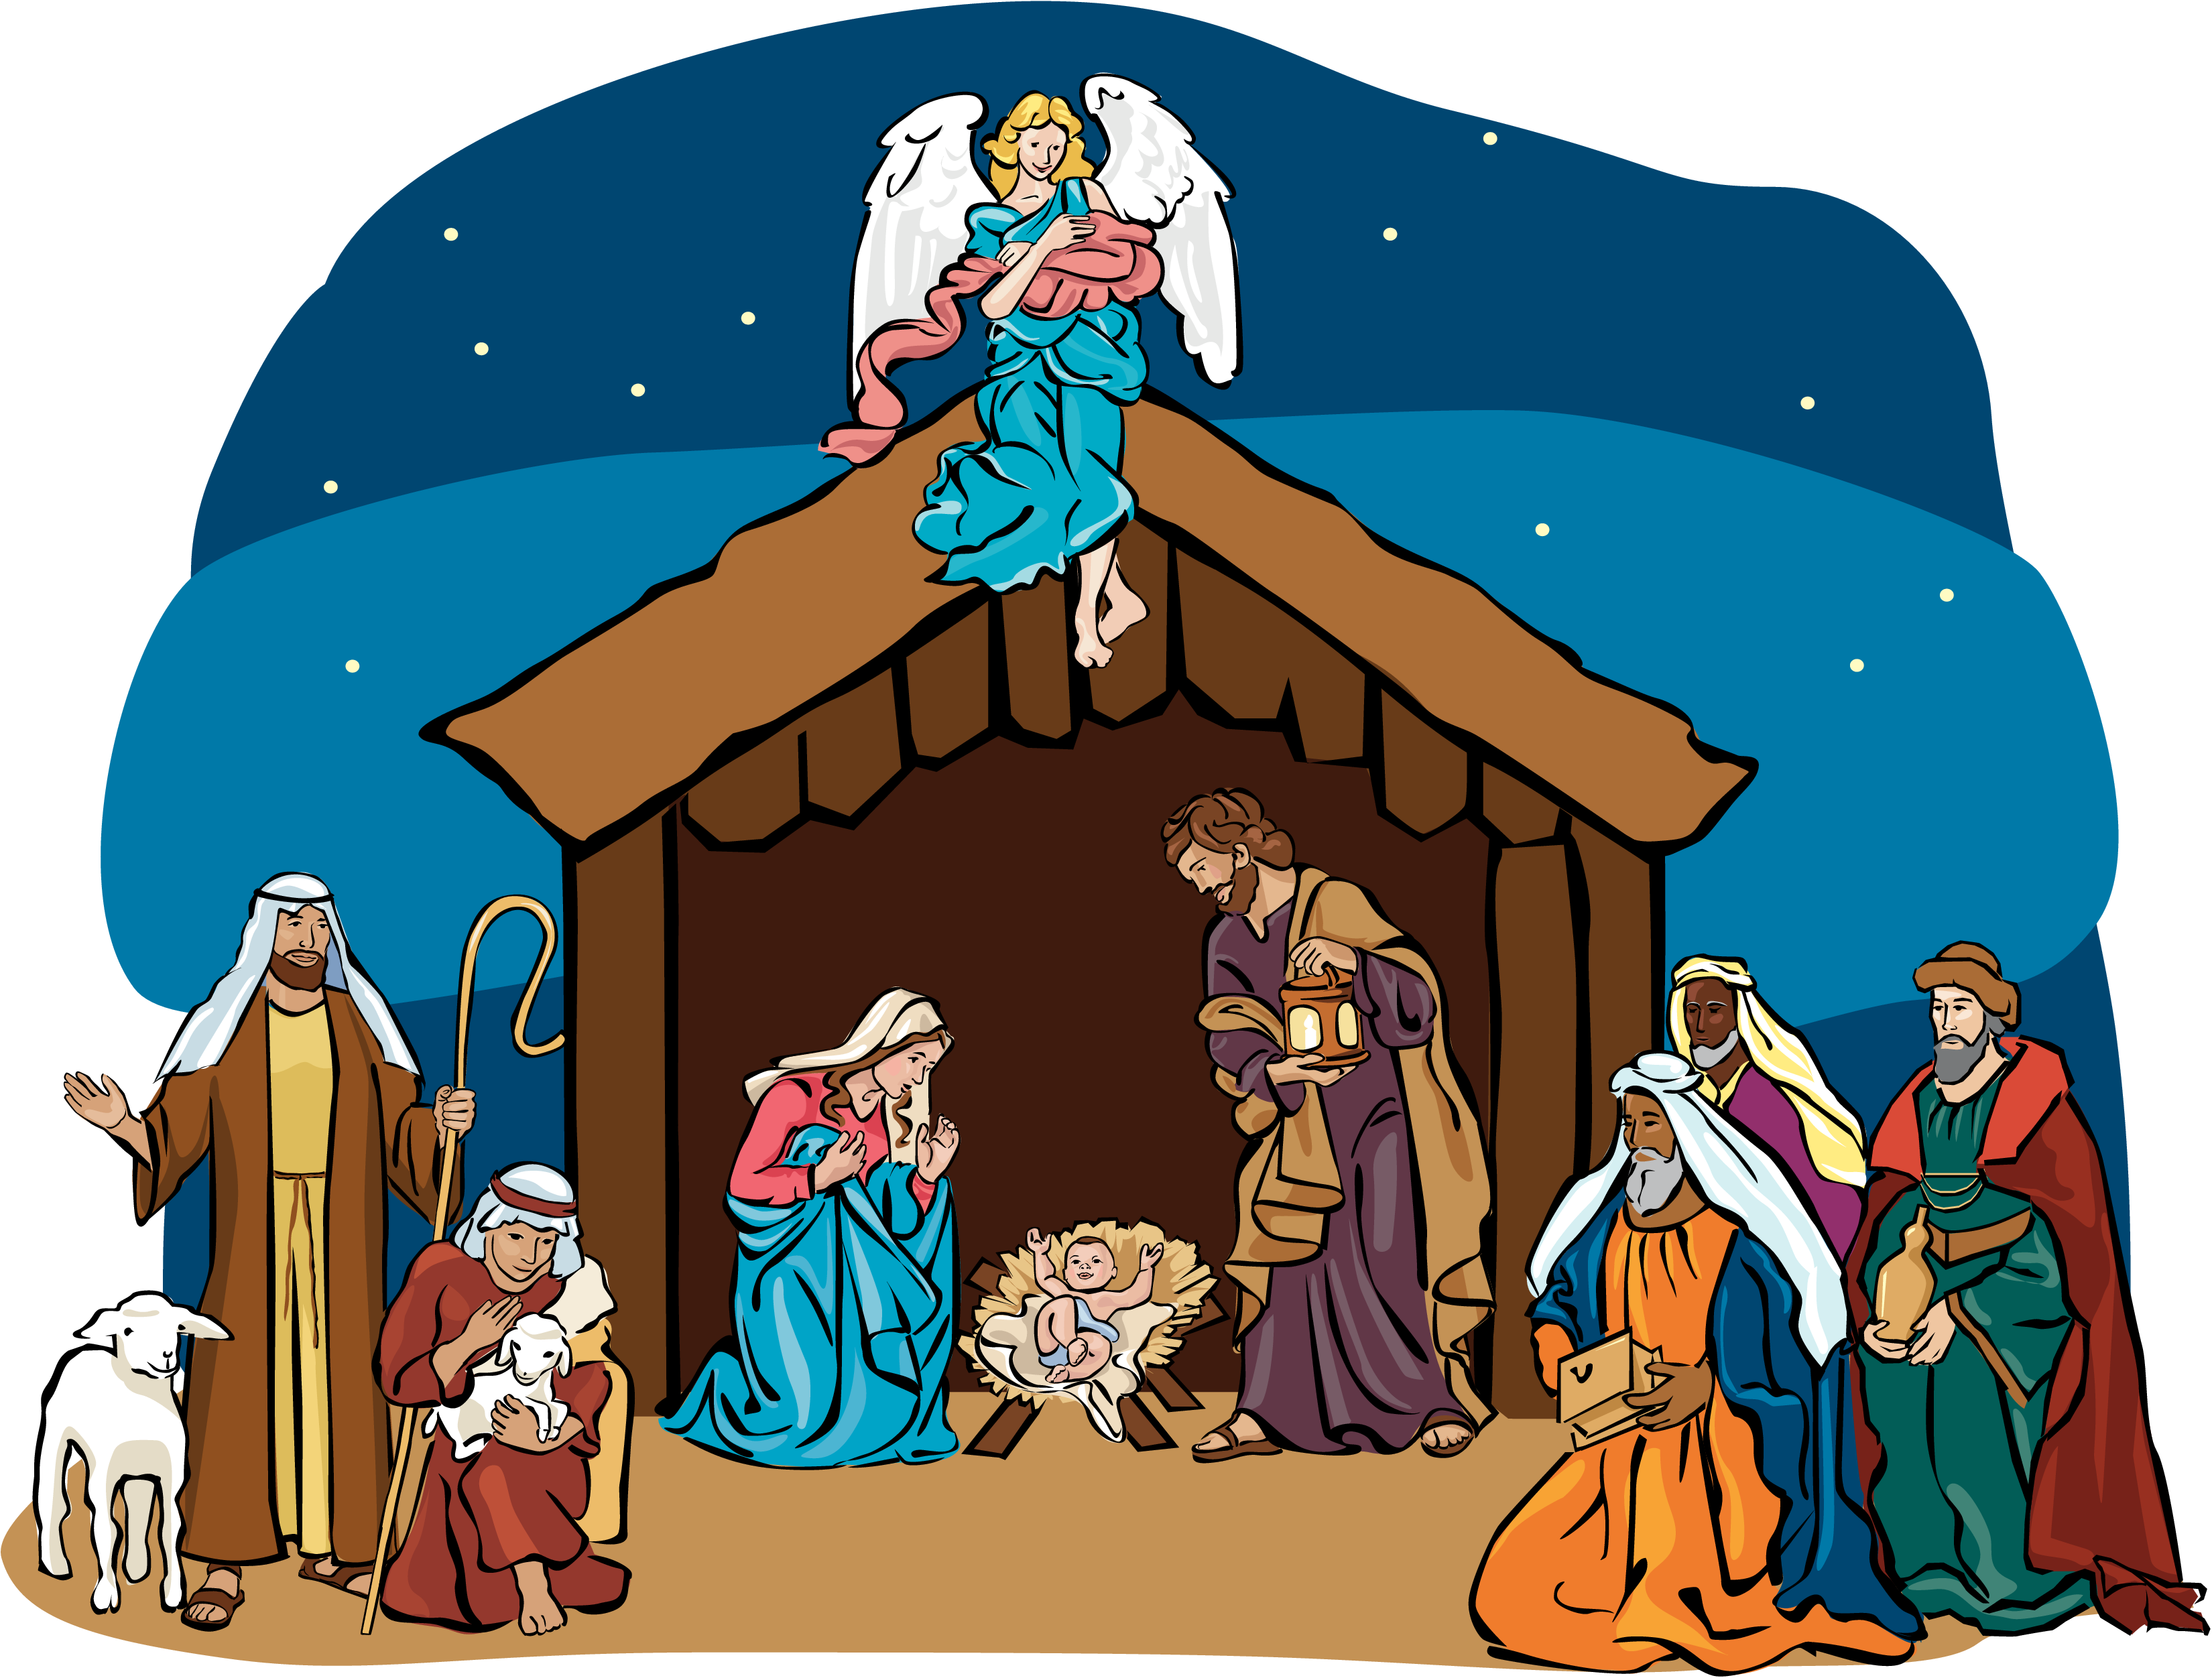 Nativity scene clipart free 3 » Clipart Station.